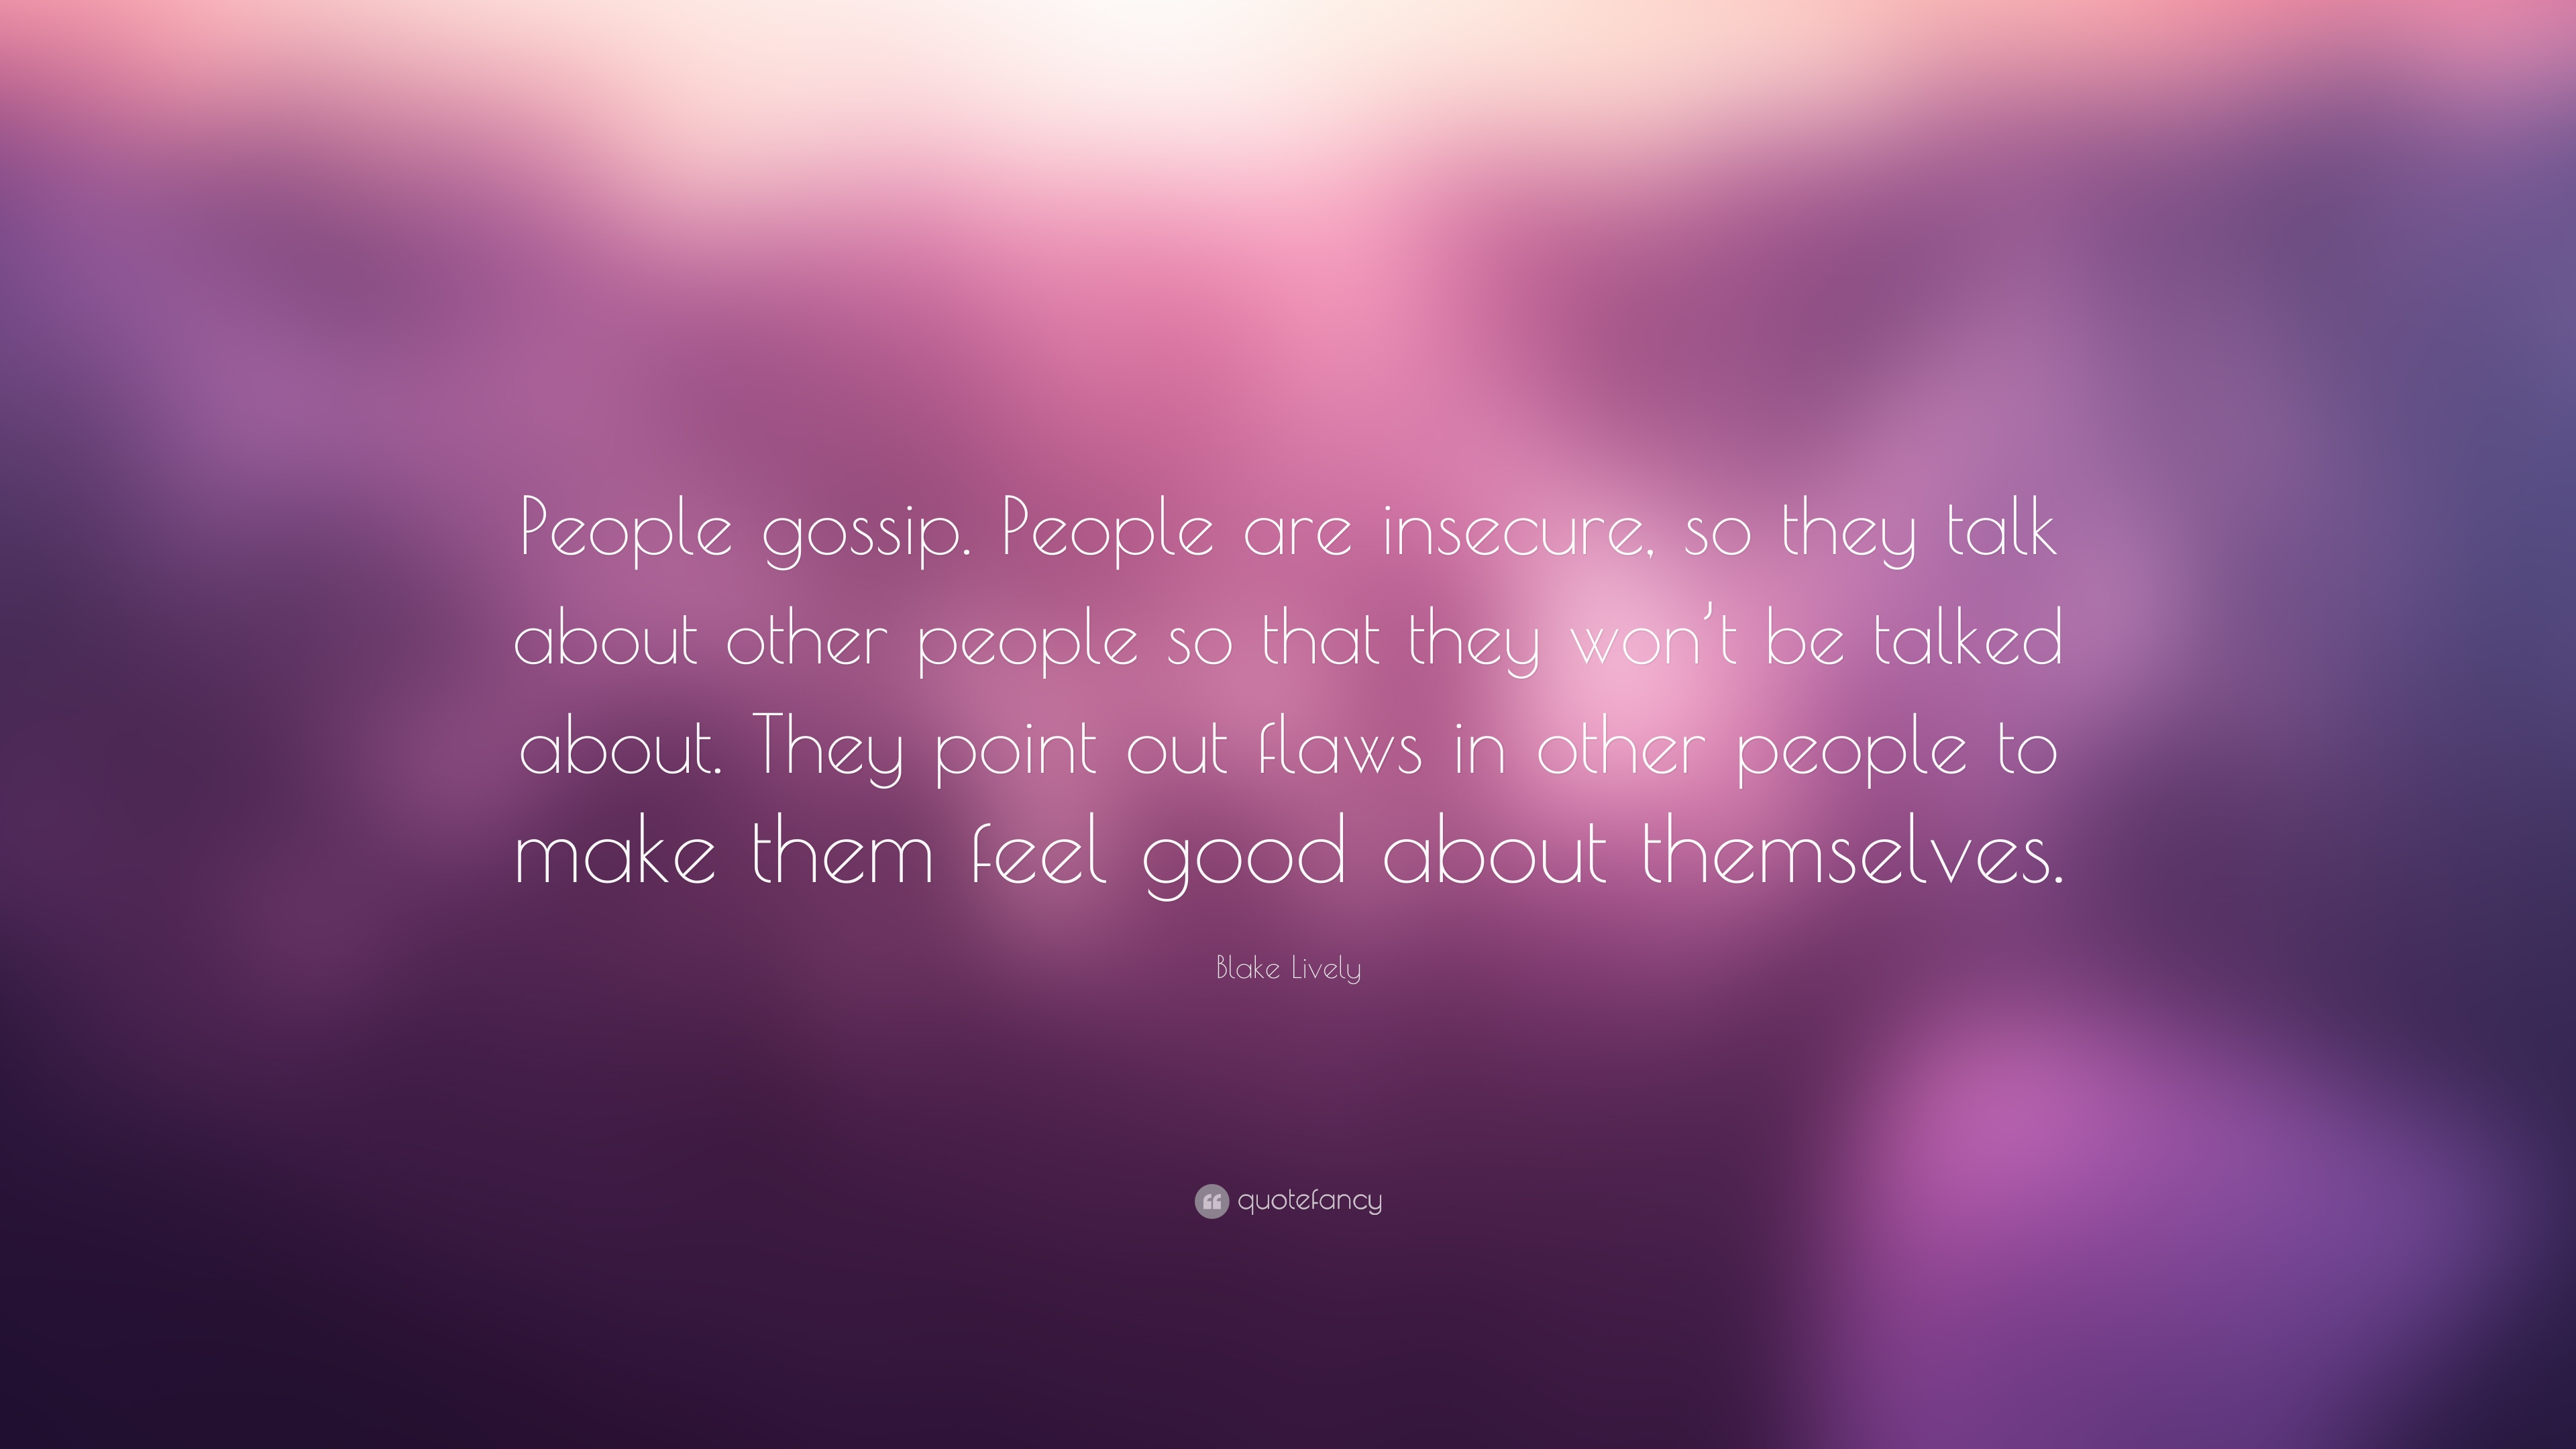 what makes people gossip